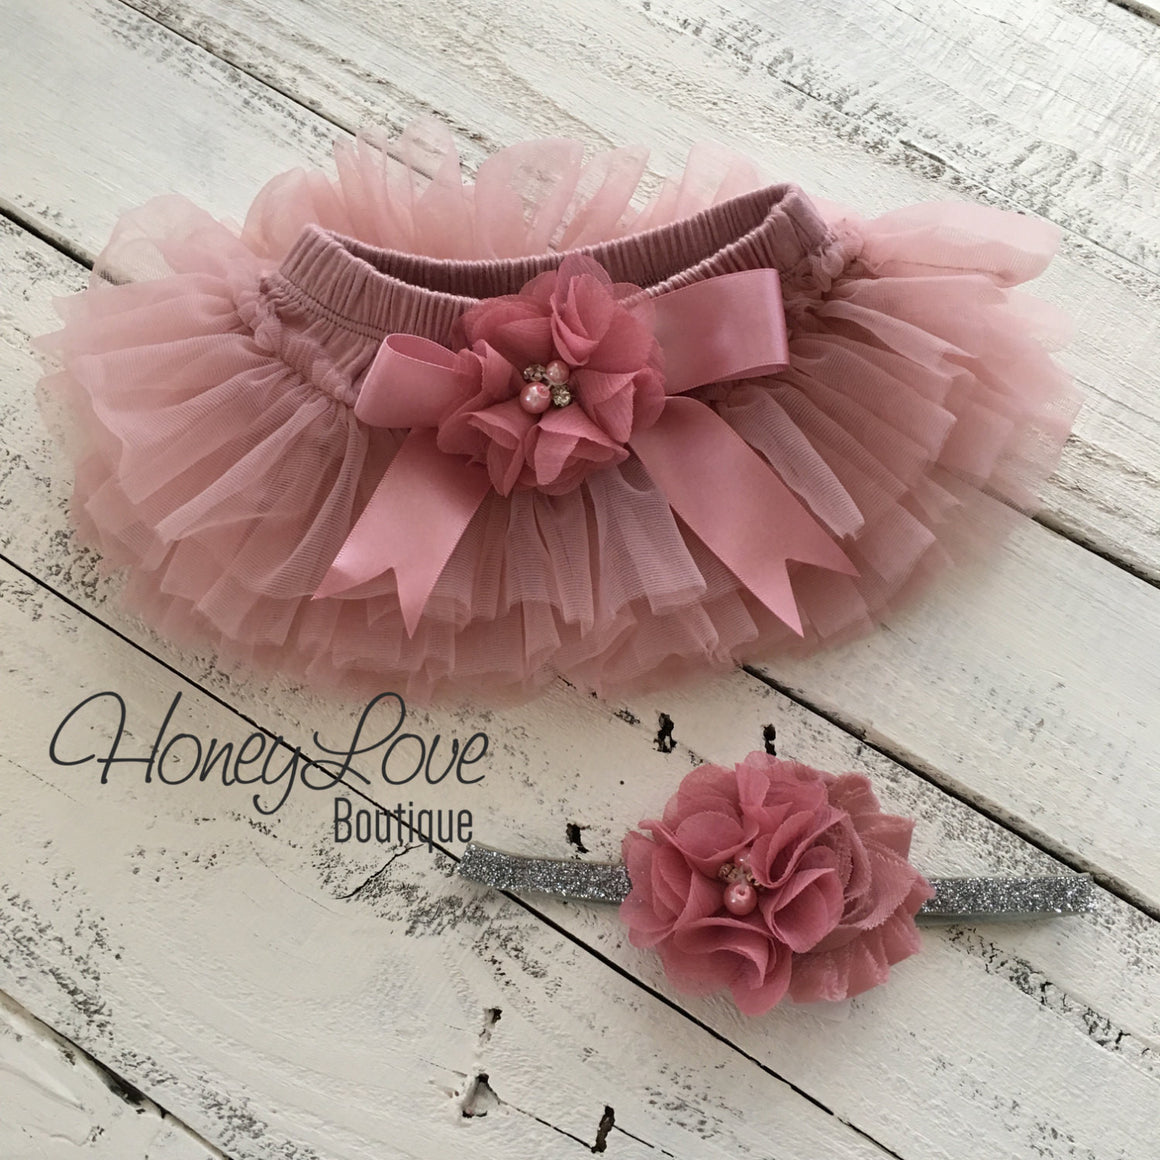 Vintage Pink tutu skirt bloomers and silver glitter headband - embellished bloomers - HoneyLoveBoutique